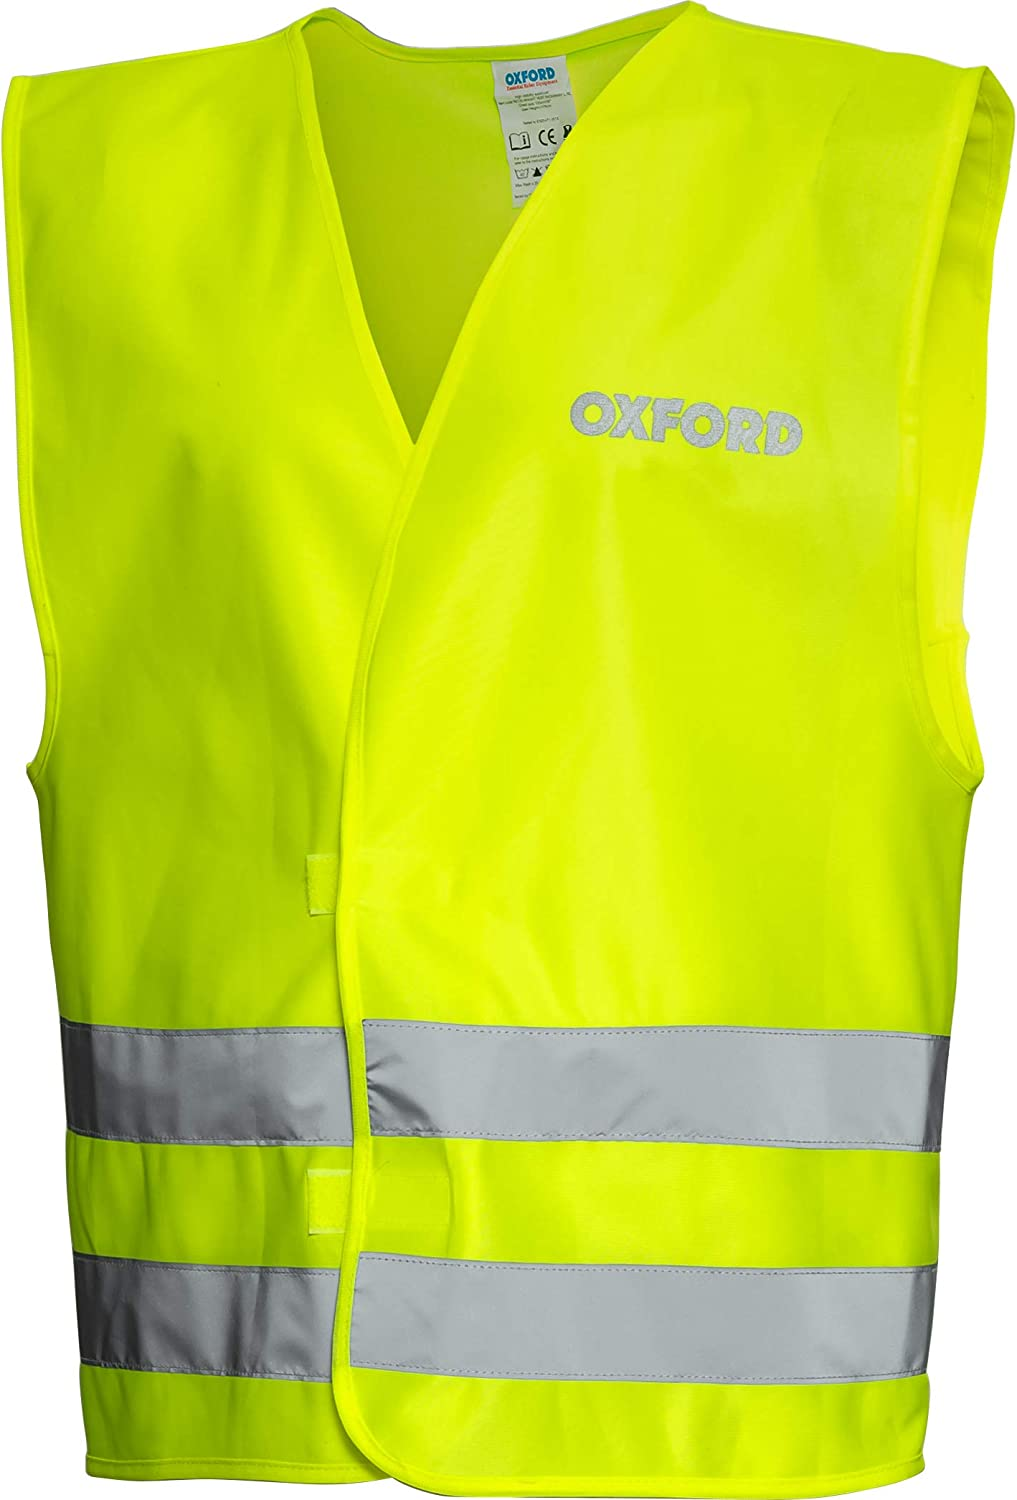 L//Xl, Giallo Oxford Gilet Di Visibilit/à Moto Bright Packaway Fluorescent Giallo